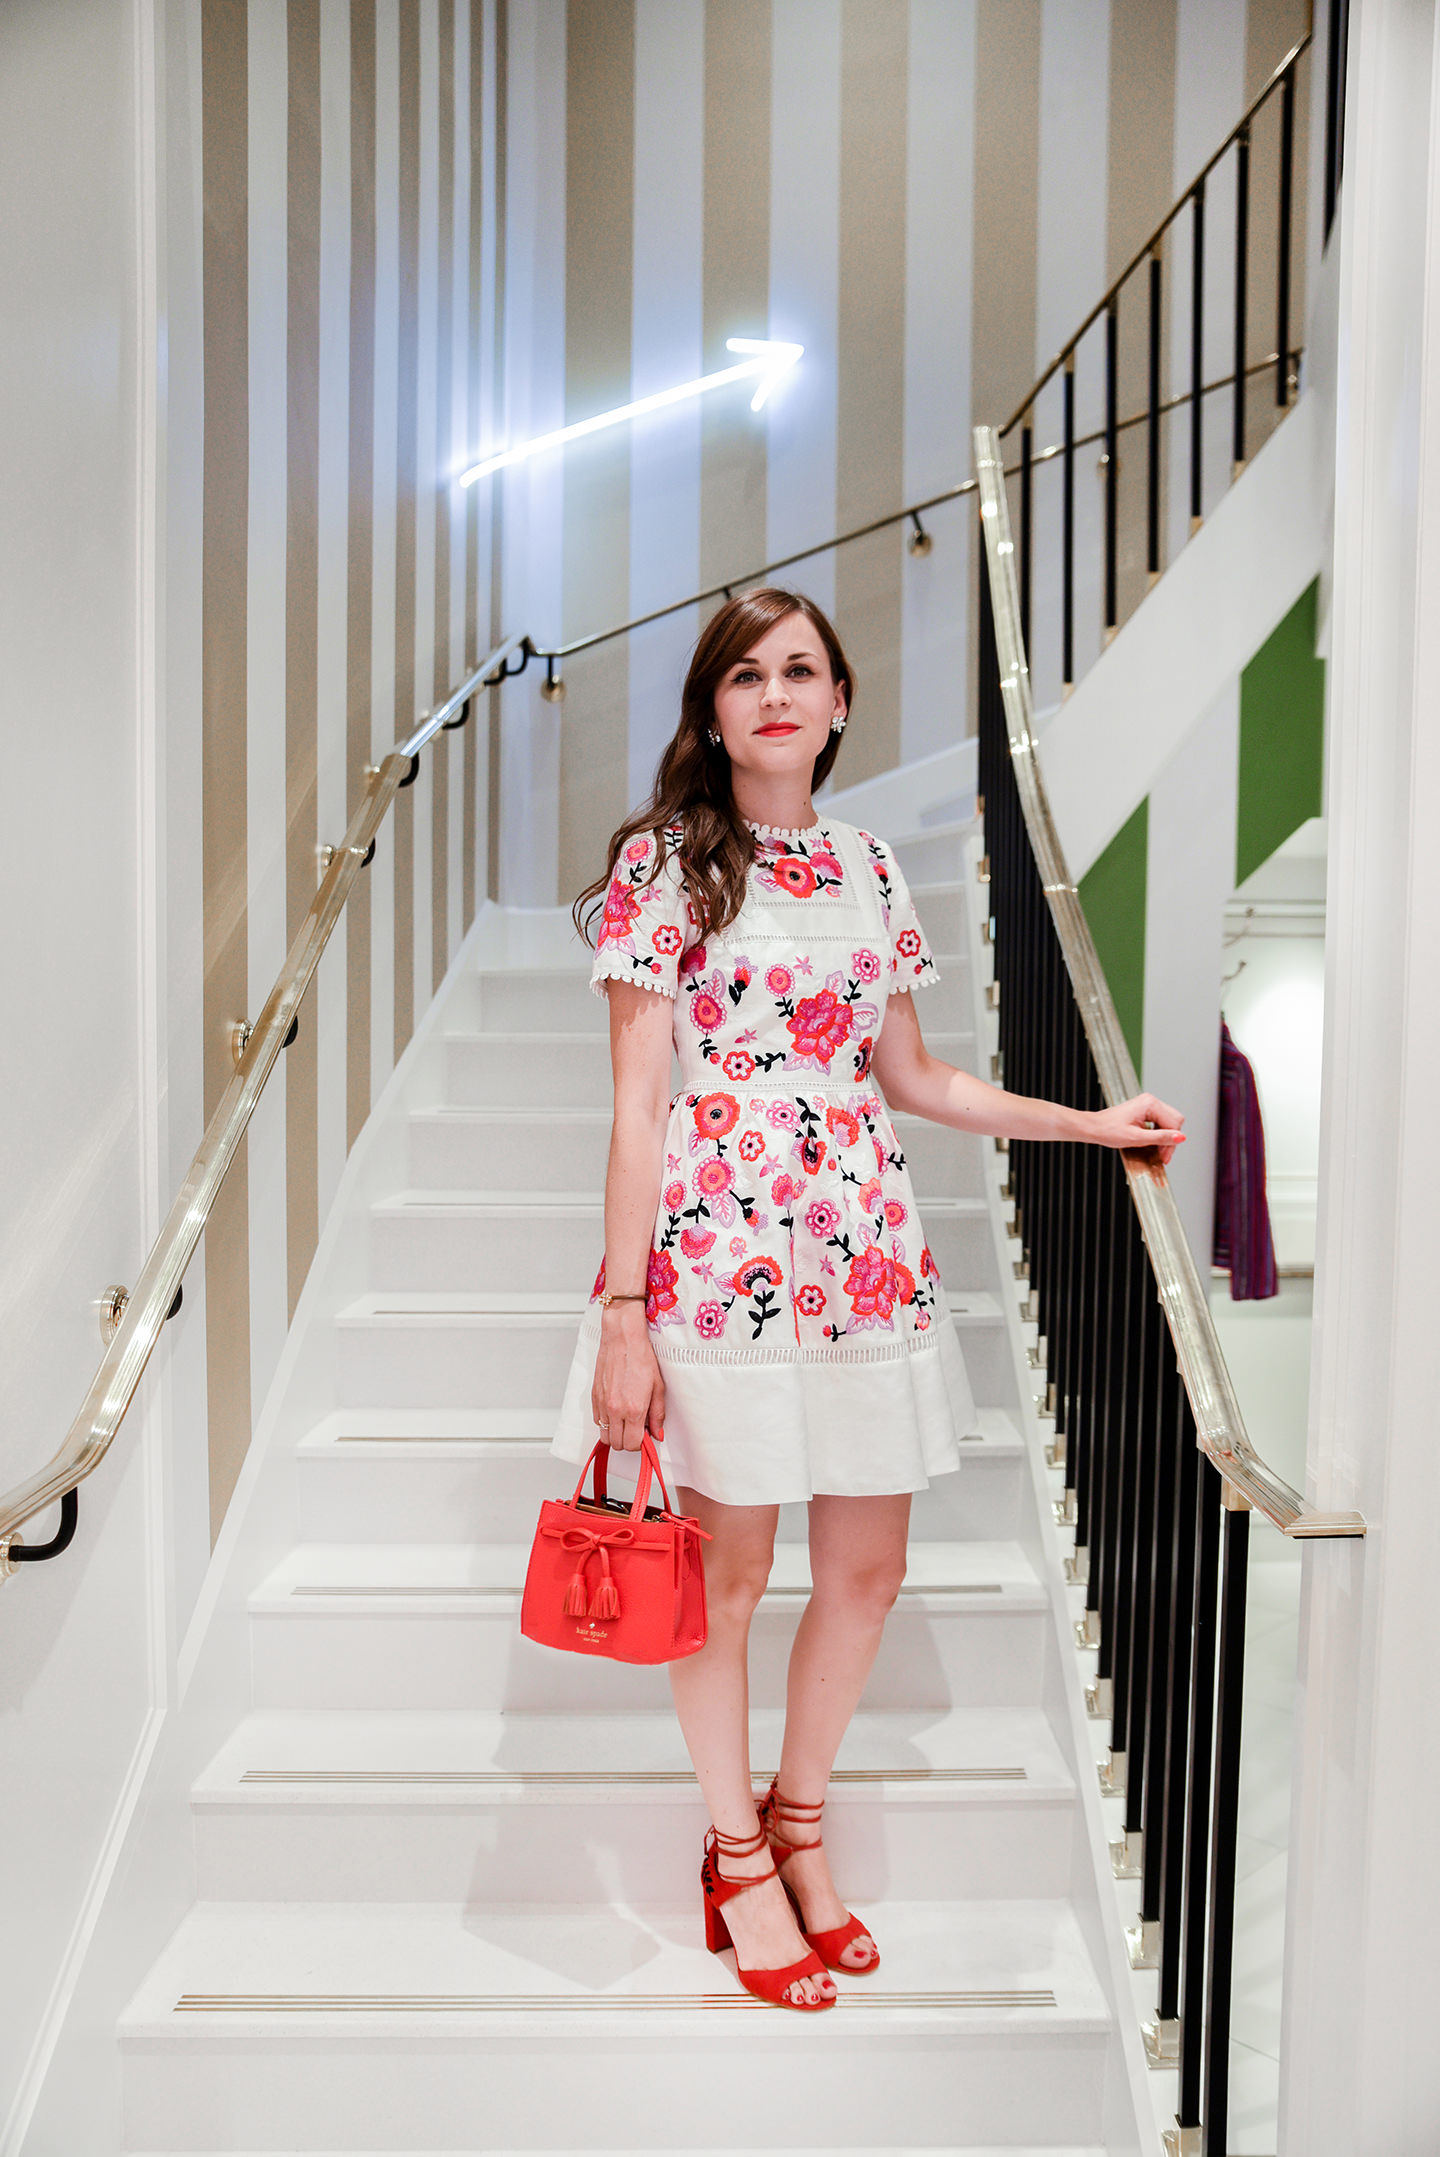 Blog-Mode-And-The-City-Lifestyle-Kate-Spade-Paris-418-rue-saint-honore-IG-2 copie